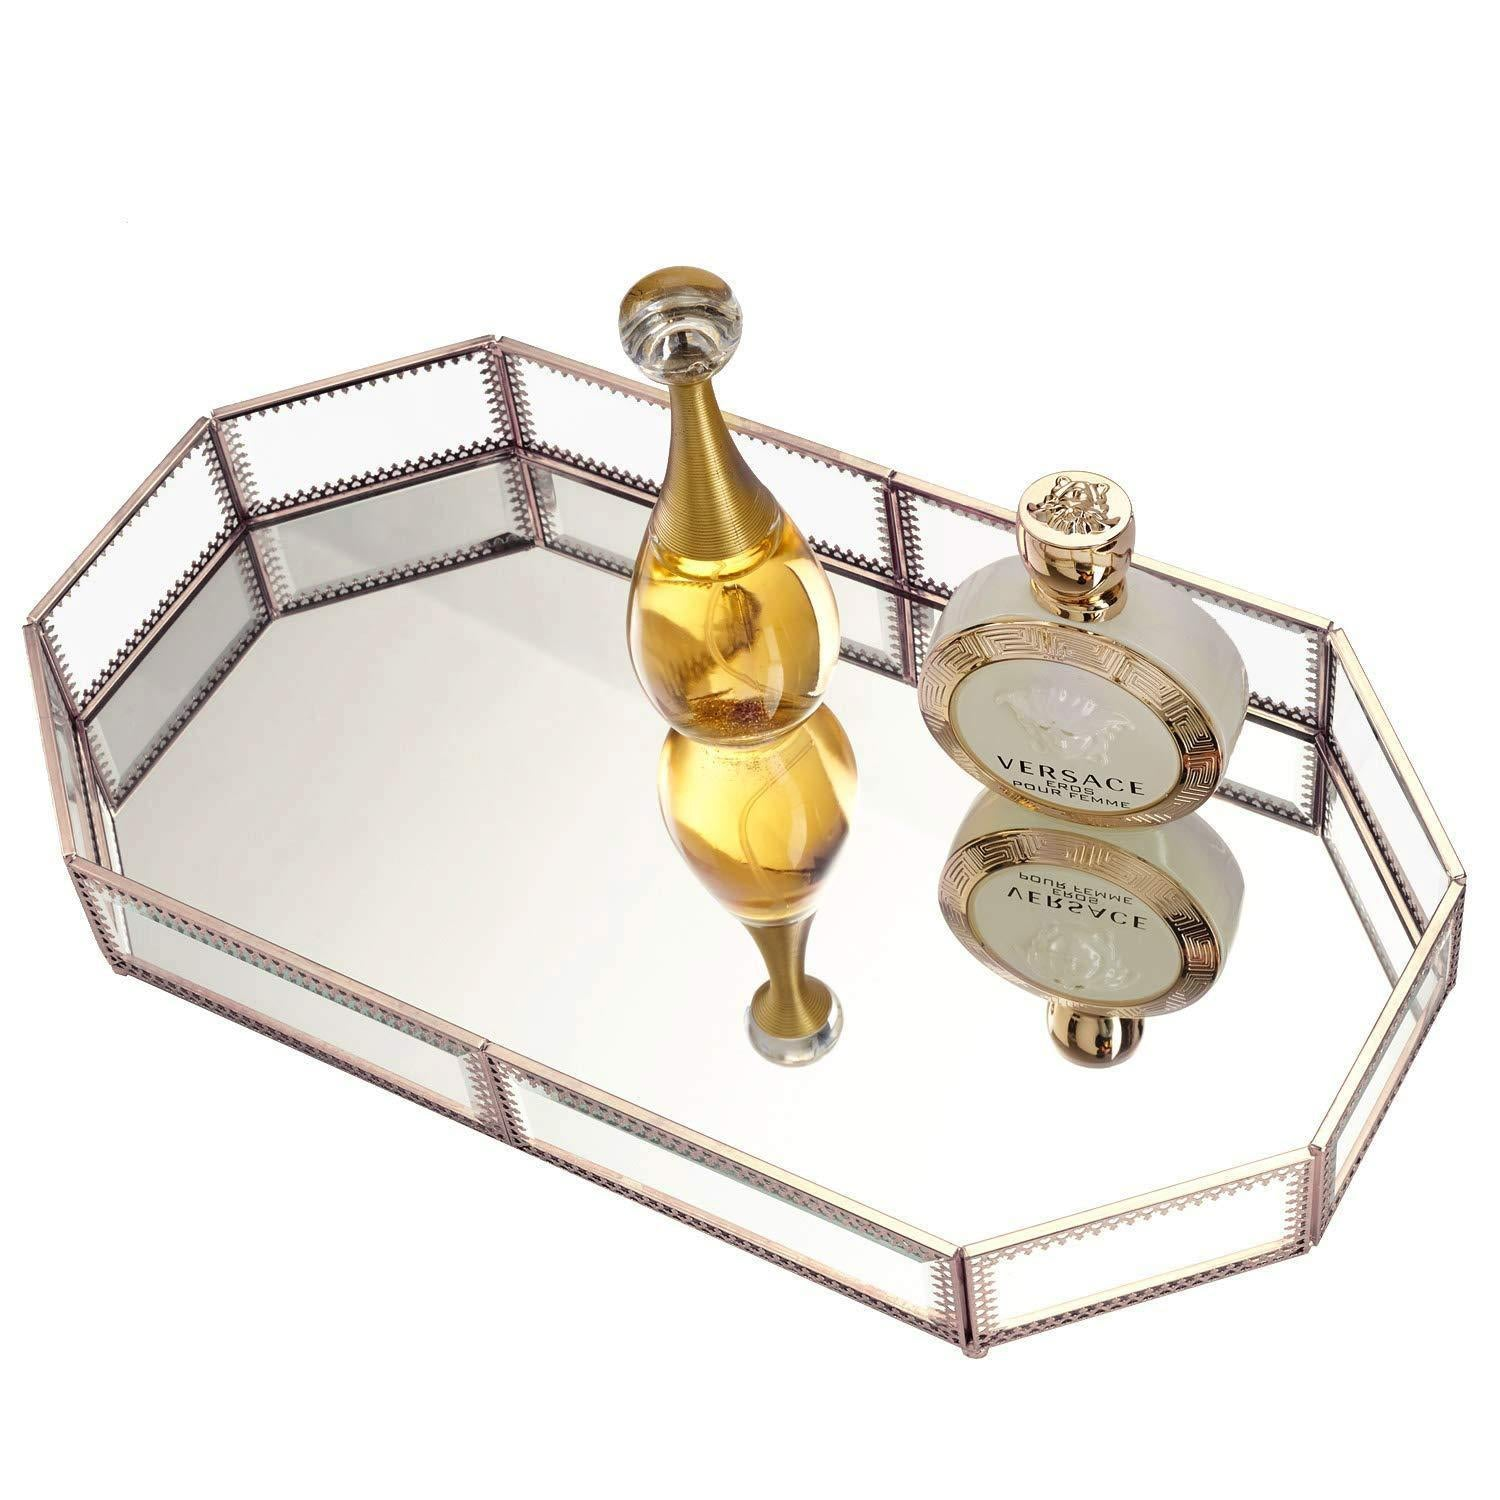 Top rated hersoo large classic vanity tray ornate decorative perfume elegant mirrorred tray for skincare dresser vintage organizer for bathroom countertop bathroom accessories organizer brass